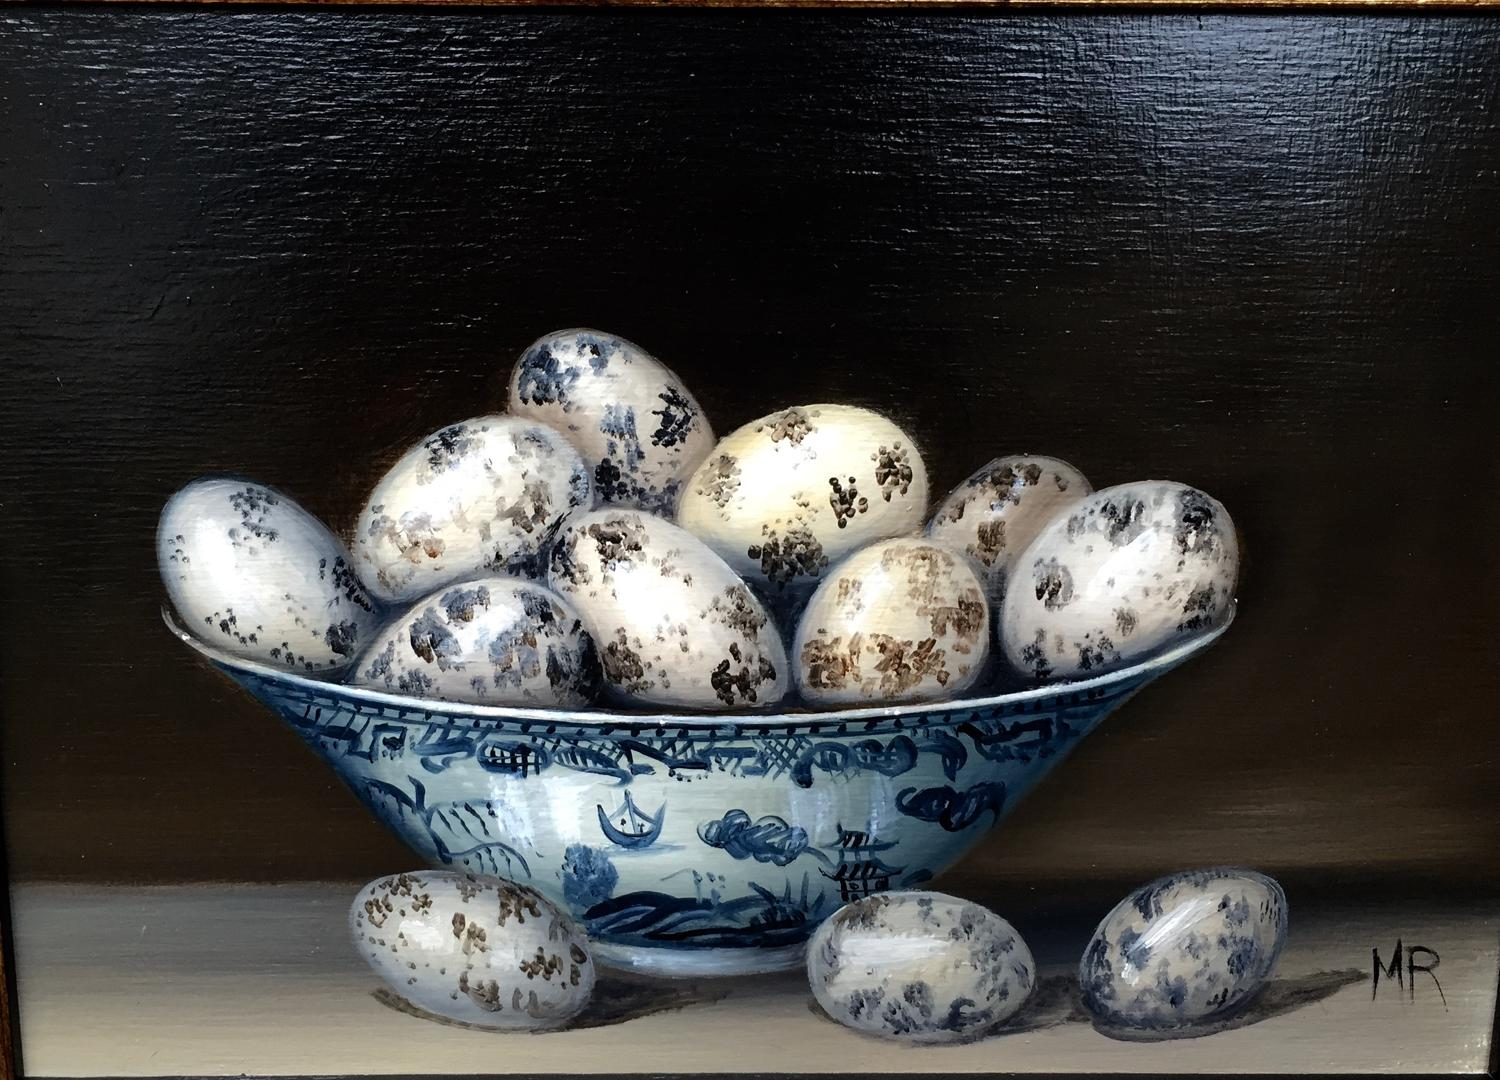 Oil painting of a bowl of quail's eggs